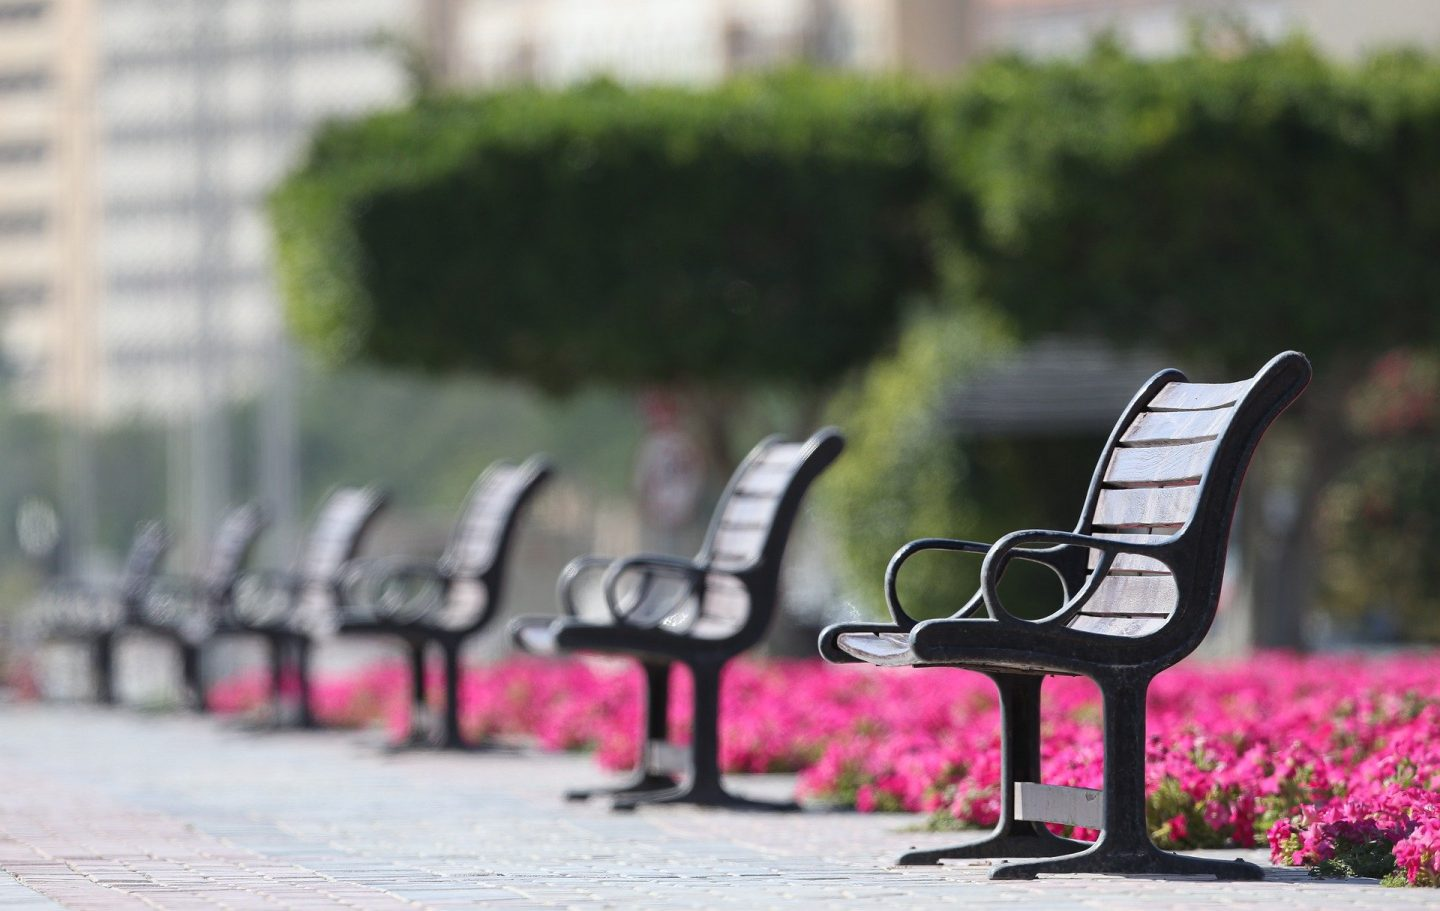 A row of empty benches in a park with pink flowers behind them